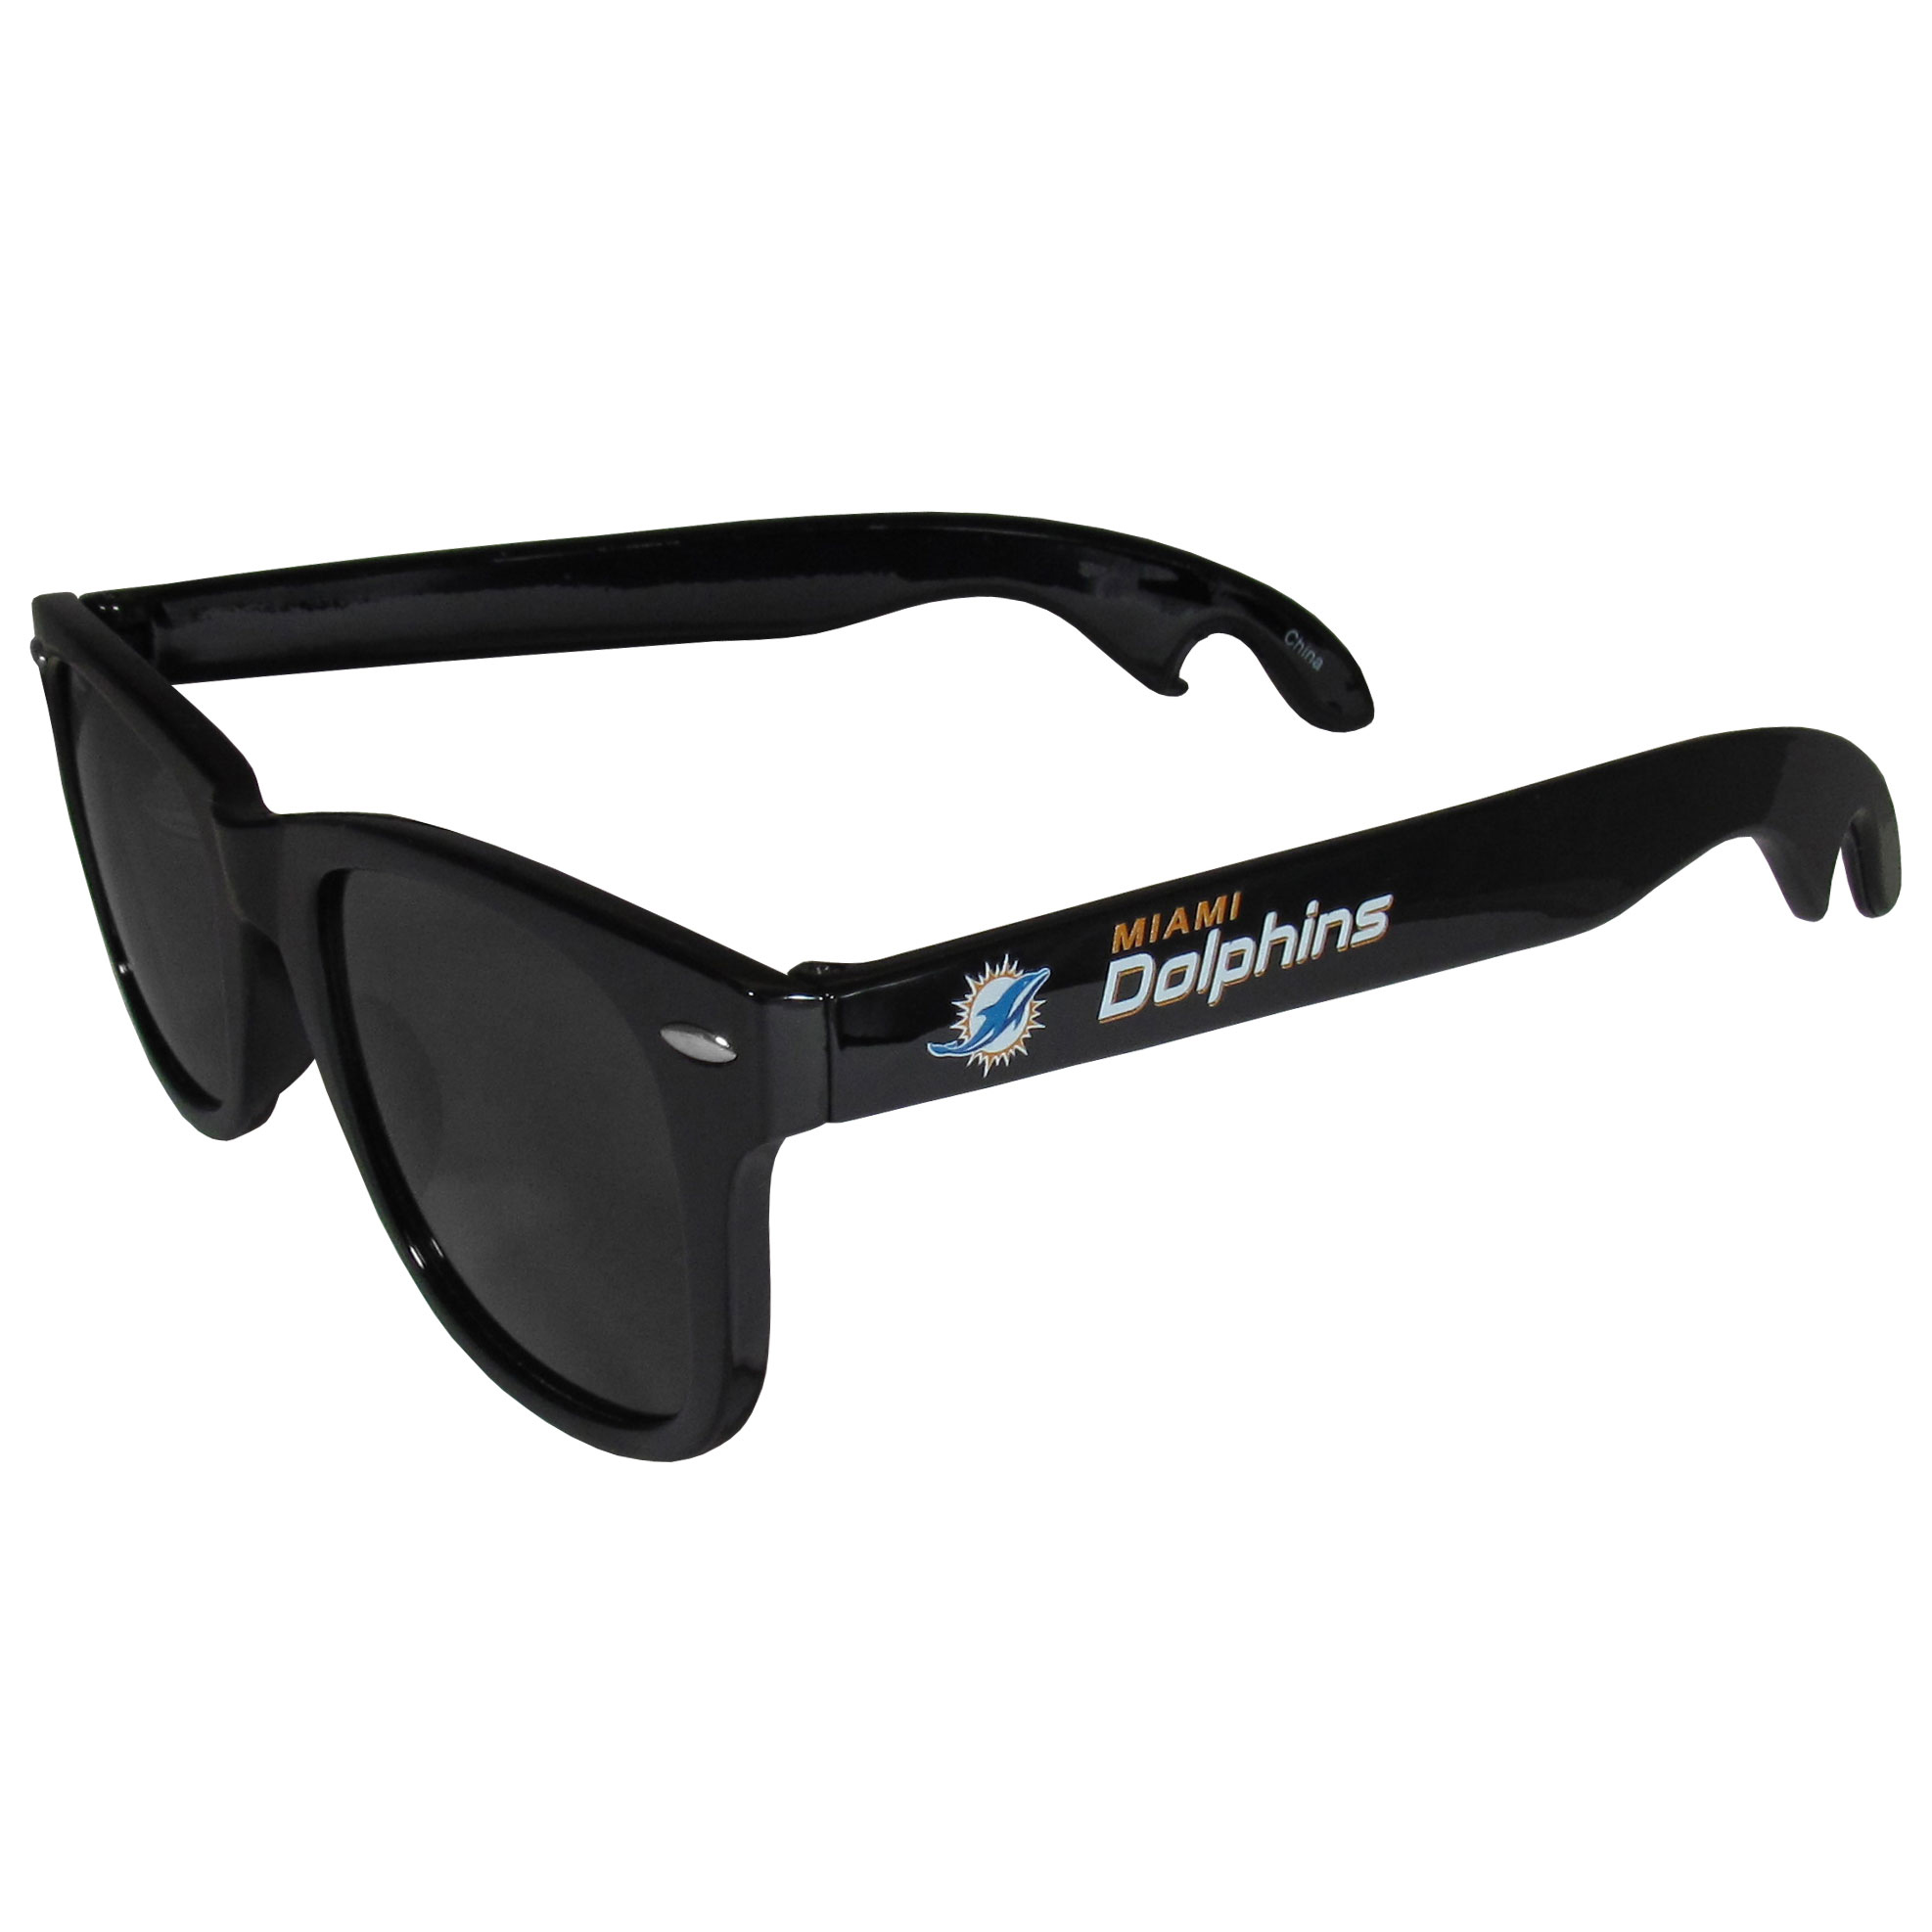 Miami Dolphins Beachfarer Bottle Opener Sunglasses - Seriously, these sunglasses open bottles! Keep the party going with these amazing Miami Dolphins bottle opener sunglasses. The stylish retro frames feature team designs on the arms and functional bottle openers on the end of the arms. Whether you are at the beach or having a backyard BBQ on game day, these shades will keep your eyes protected with 100% UVA/UVB protection and keep you hydrated with the handy bottle opener arms.